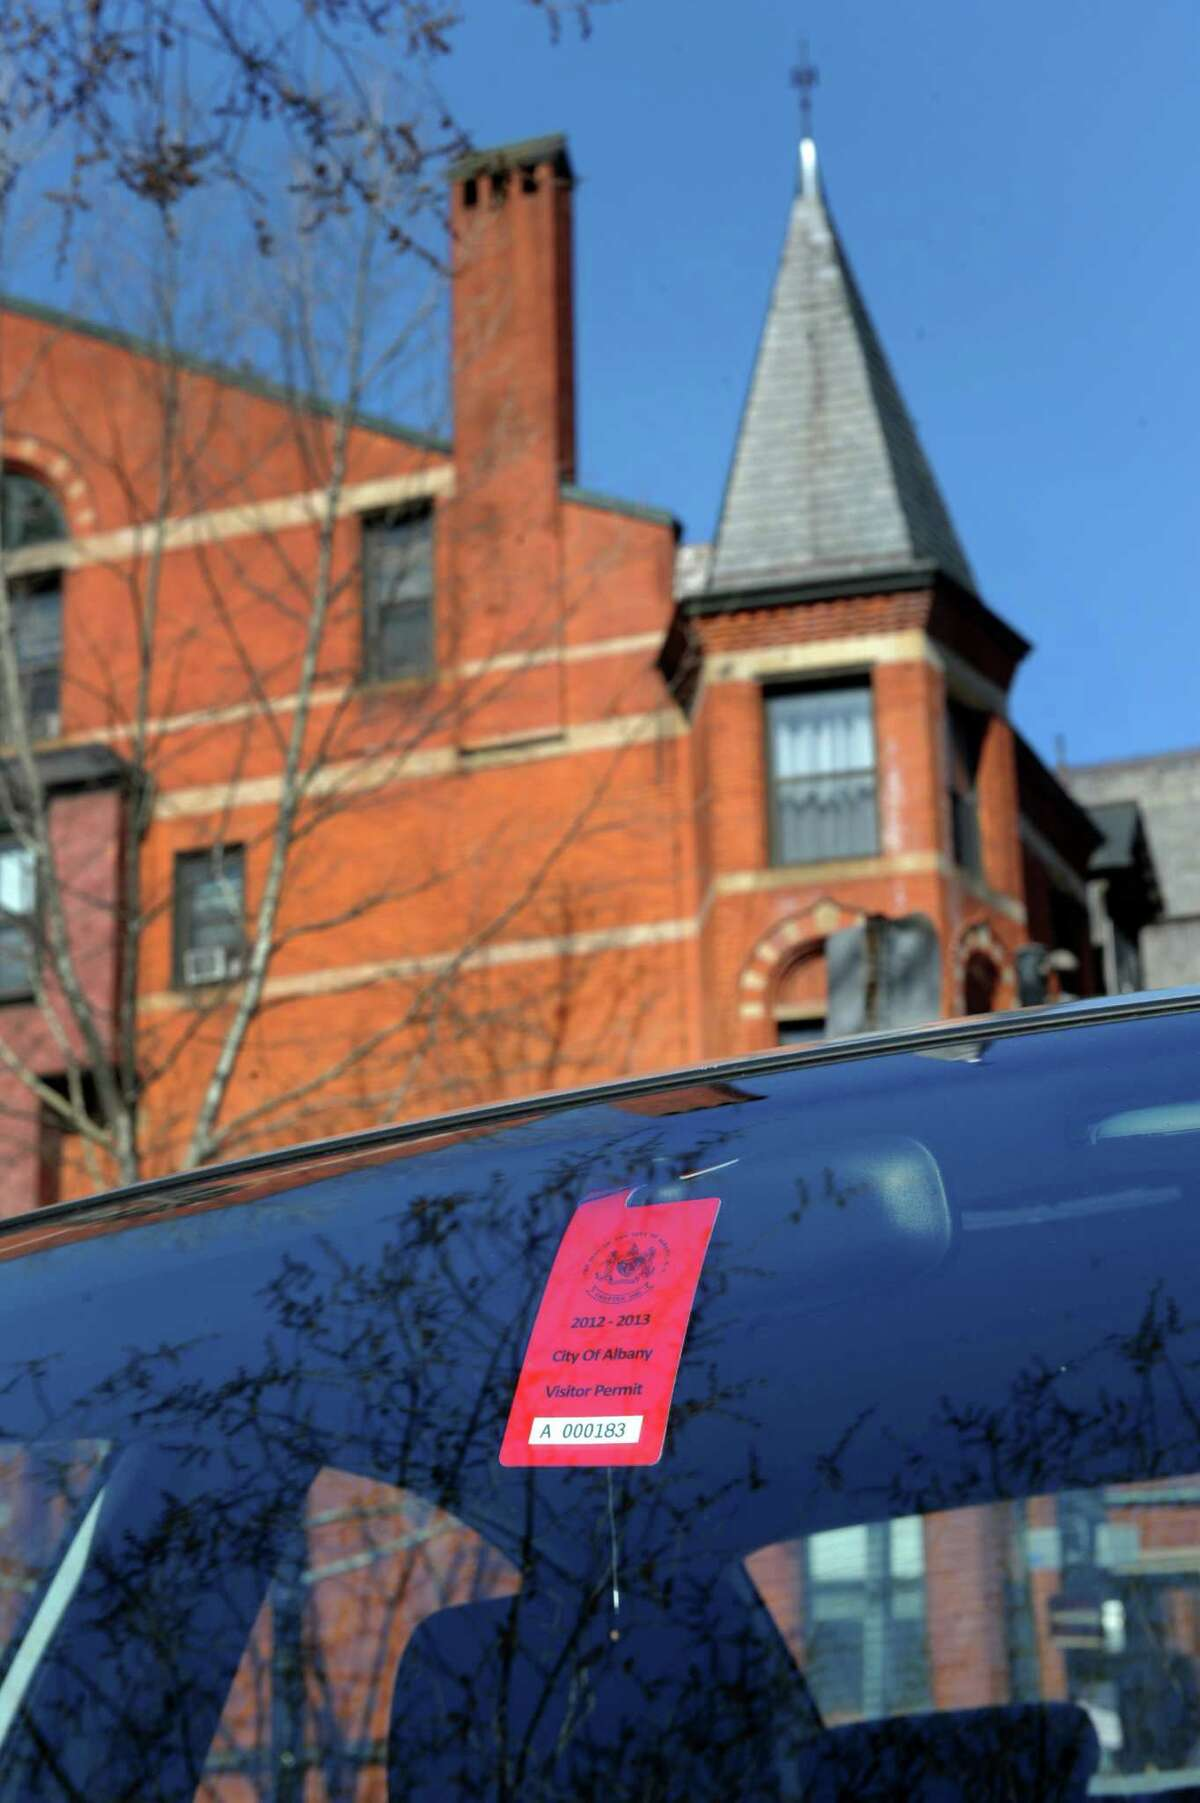 Visitor parking tag hangs on the rear view mirror of a parked car in Center Square on Wednesday, April 17, 2013, in Albany, N.Y. (Cindy Schultz / Times Union)